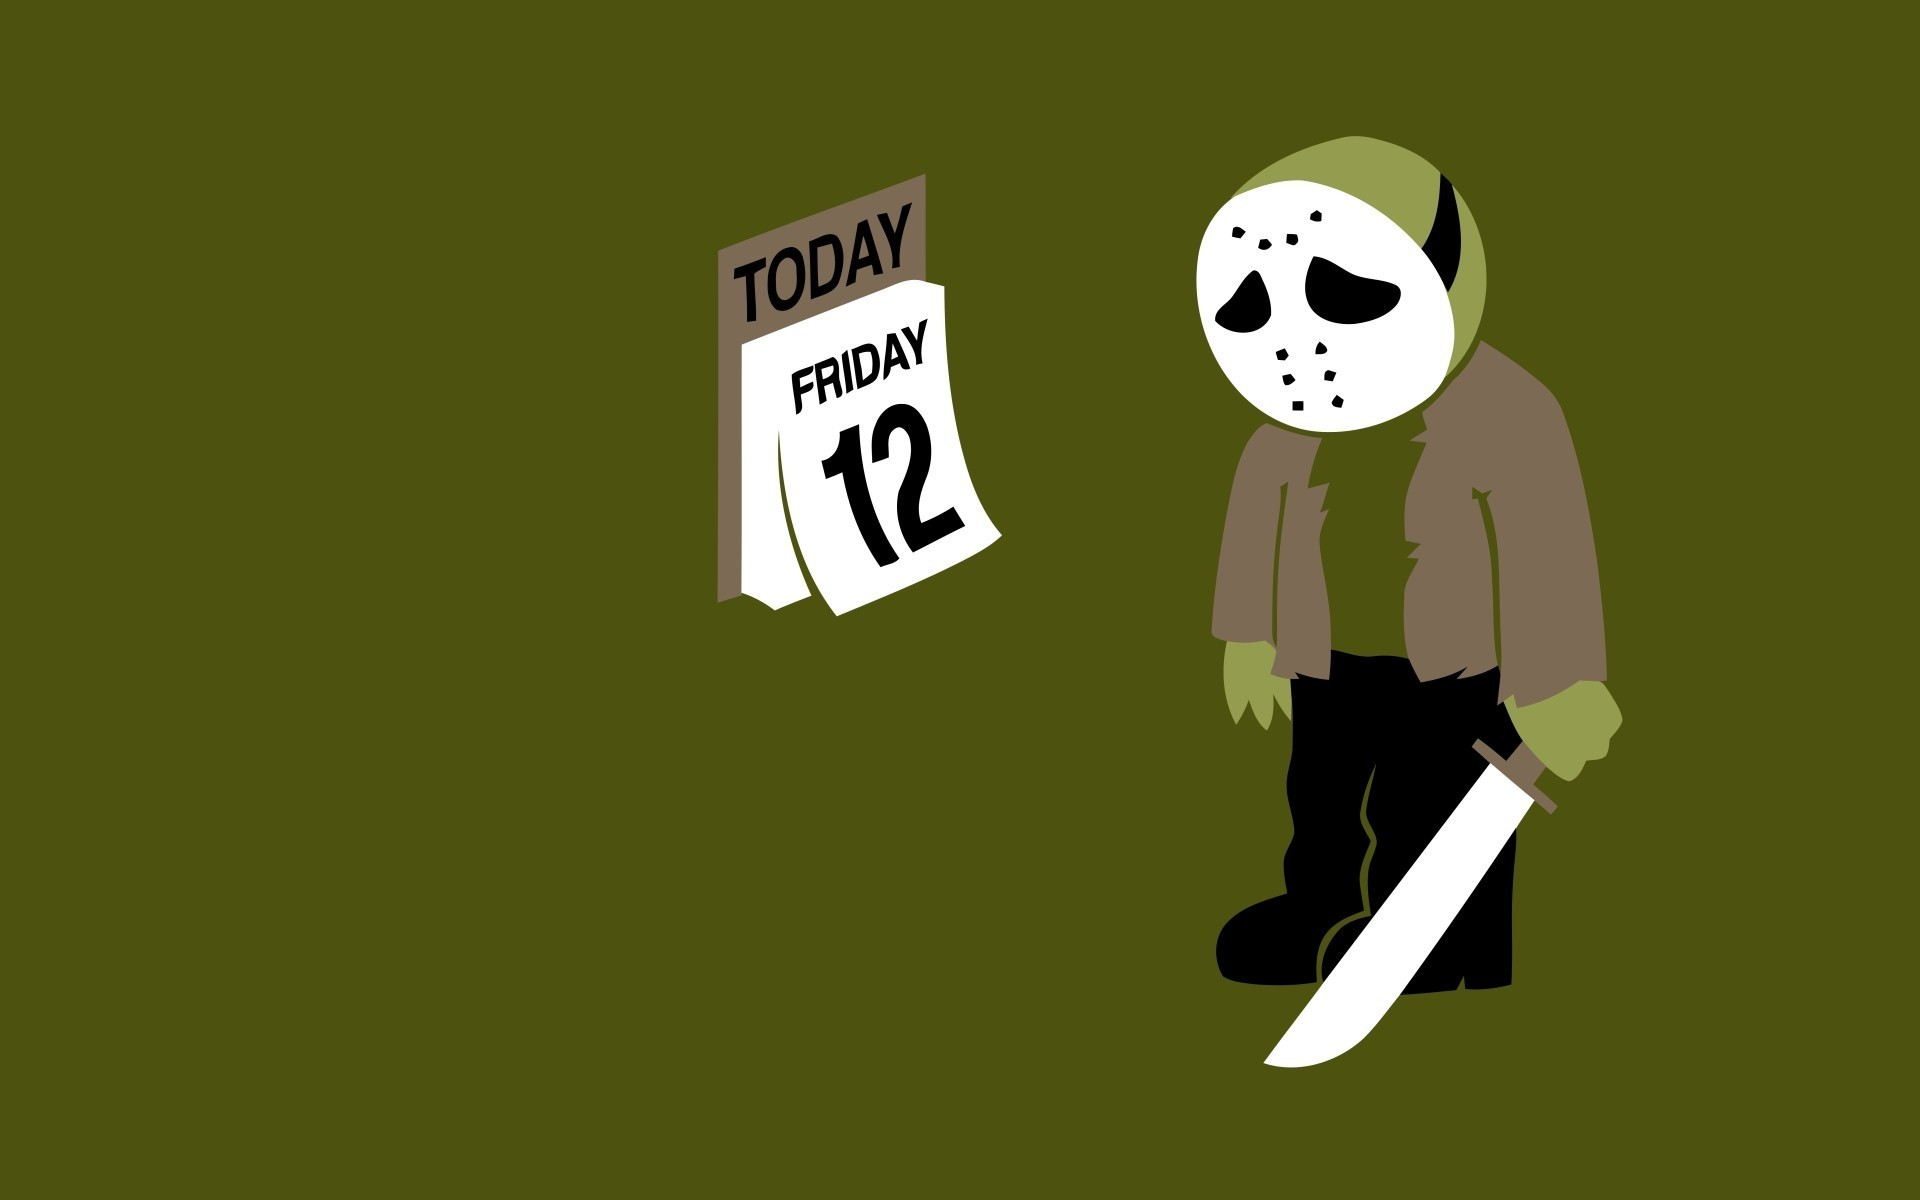 Friday the 13th jason voorhees funny wallpaper allwallpaper friday the 13th jason voorhees funny wallpaper voltagebd Images